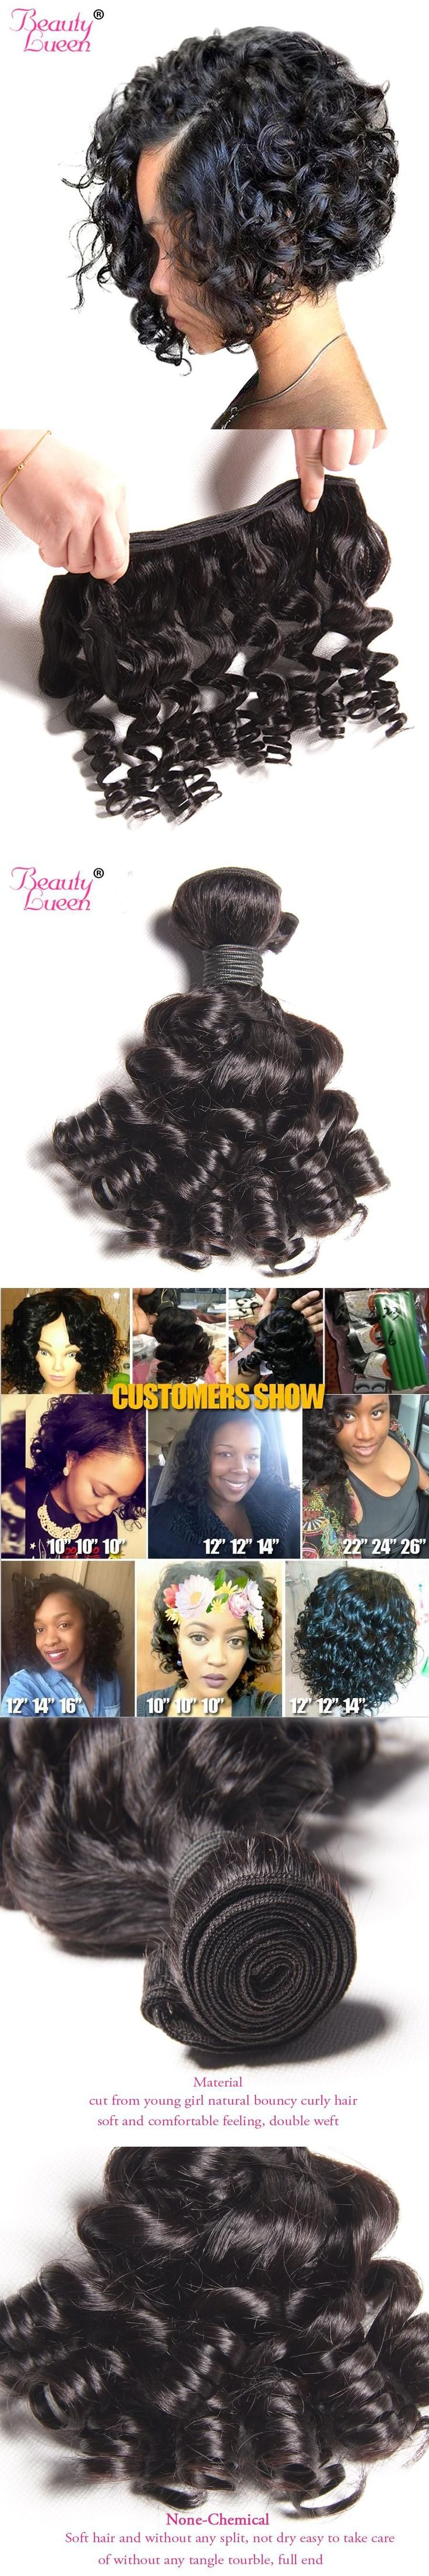 Curly Weave Human Hair Bundles Brazilian Hair Weave Bundles Non Remy Weave Bob Short Hair Extension Can Be Dyed Beauty Lueen #HairBundles #Hairextensions&weaves